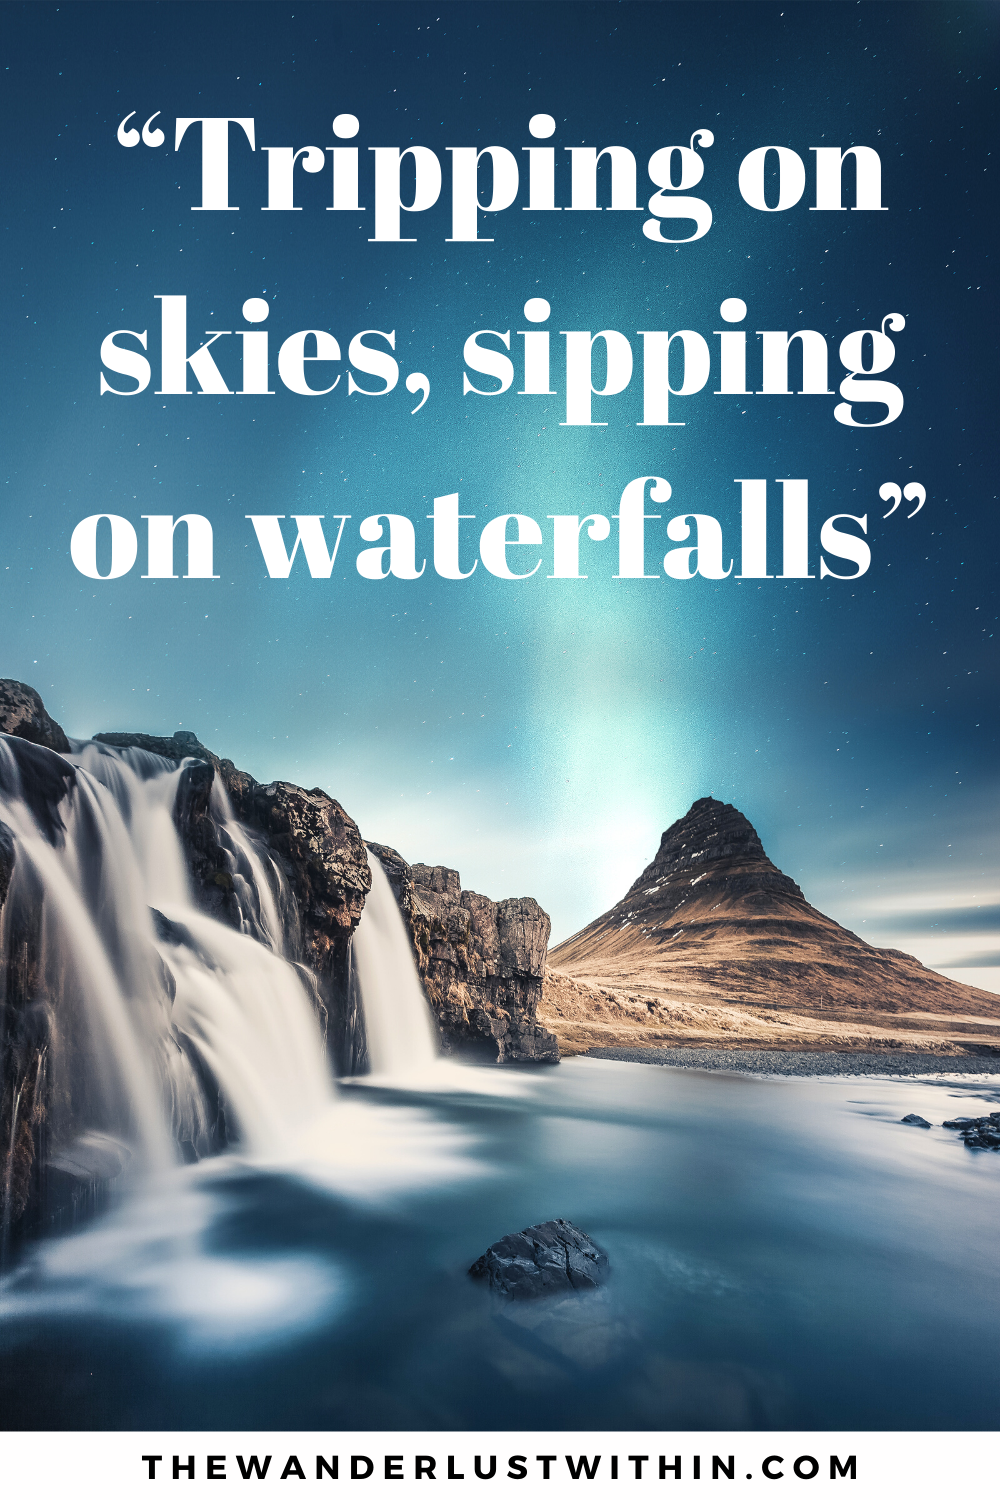 80 Best Waterfall Quotes For 2020 The Wanderlust Within In 2020 Waterfall Quotes Waterfall Captions Waterfall